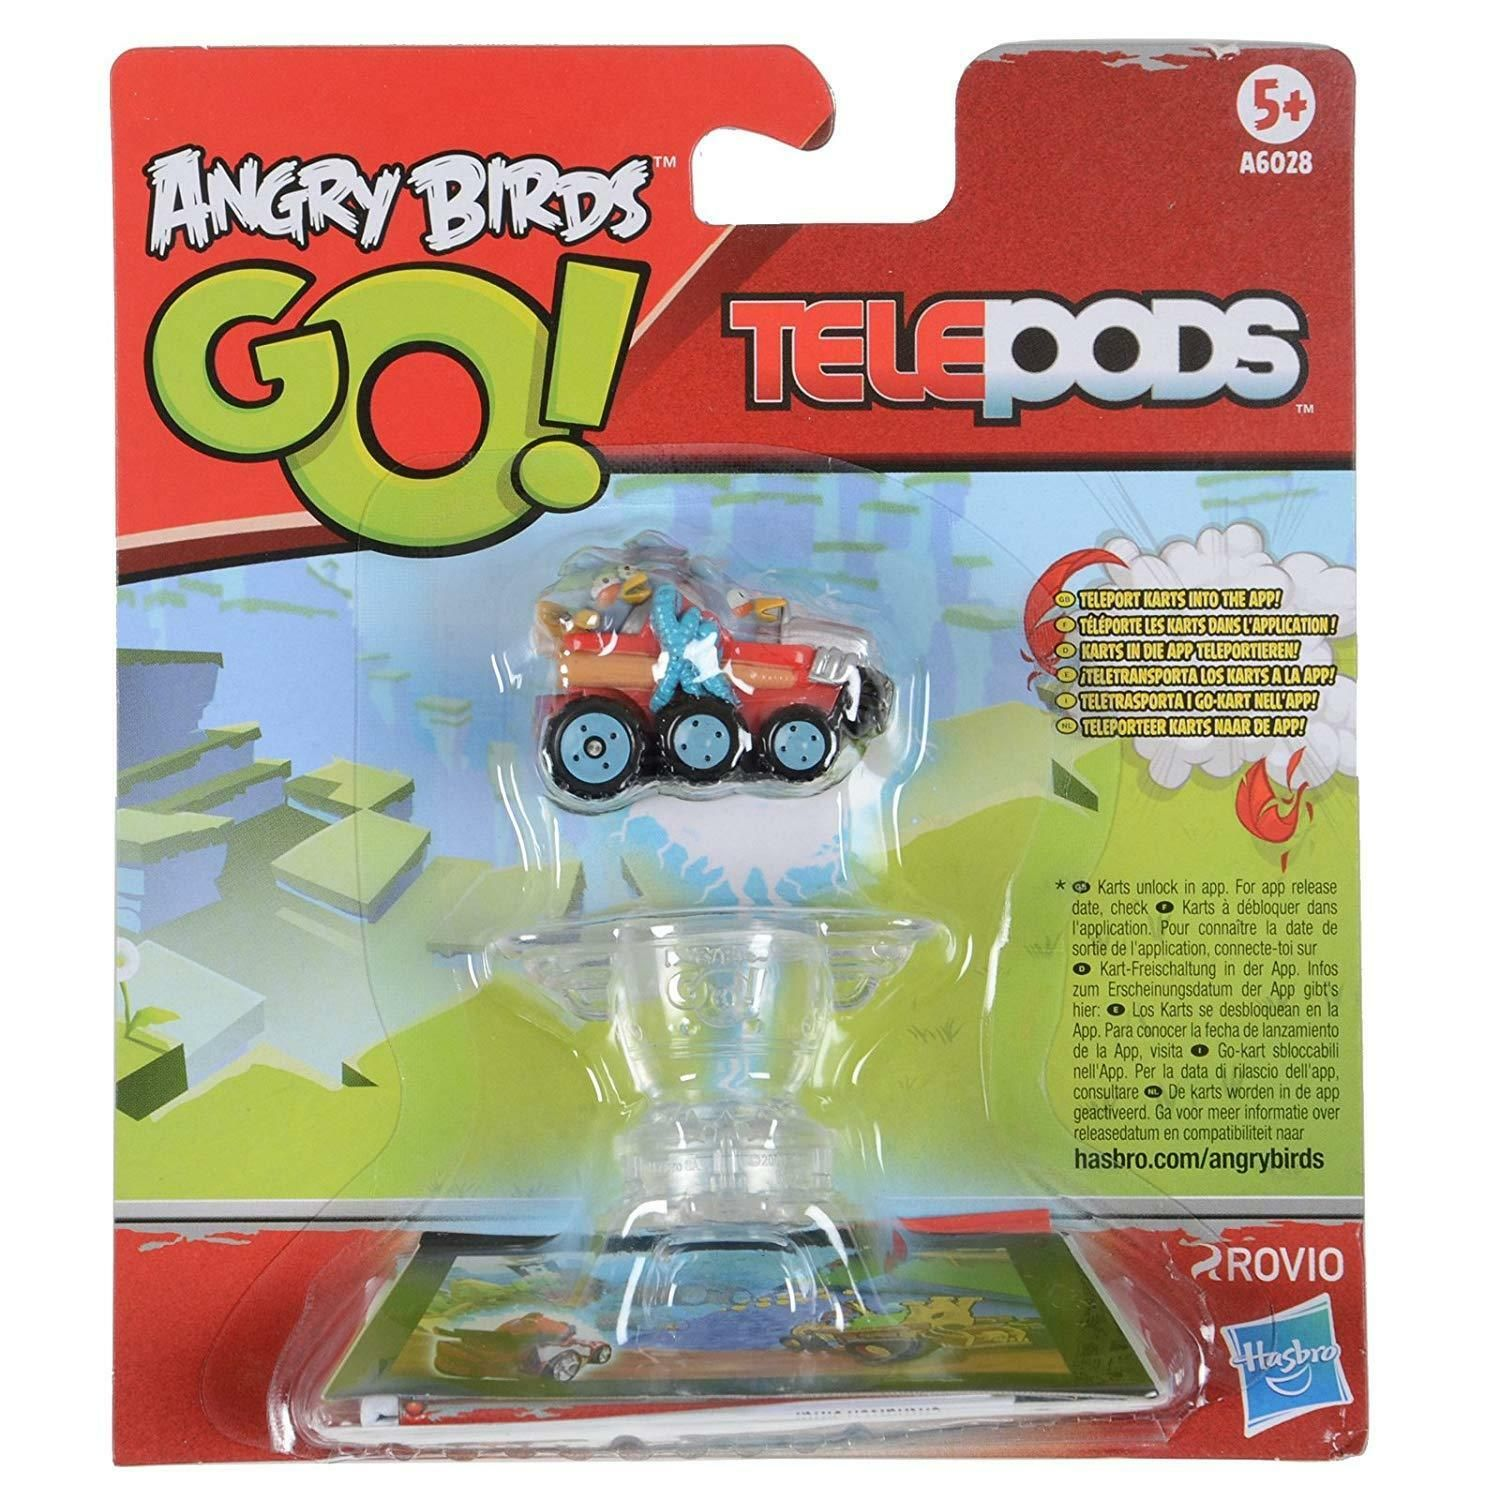 Blue Jay Jake and Jim Telepods BLUE Birds Kart NEW Angry Birds GO